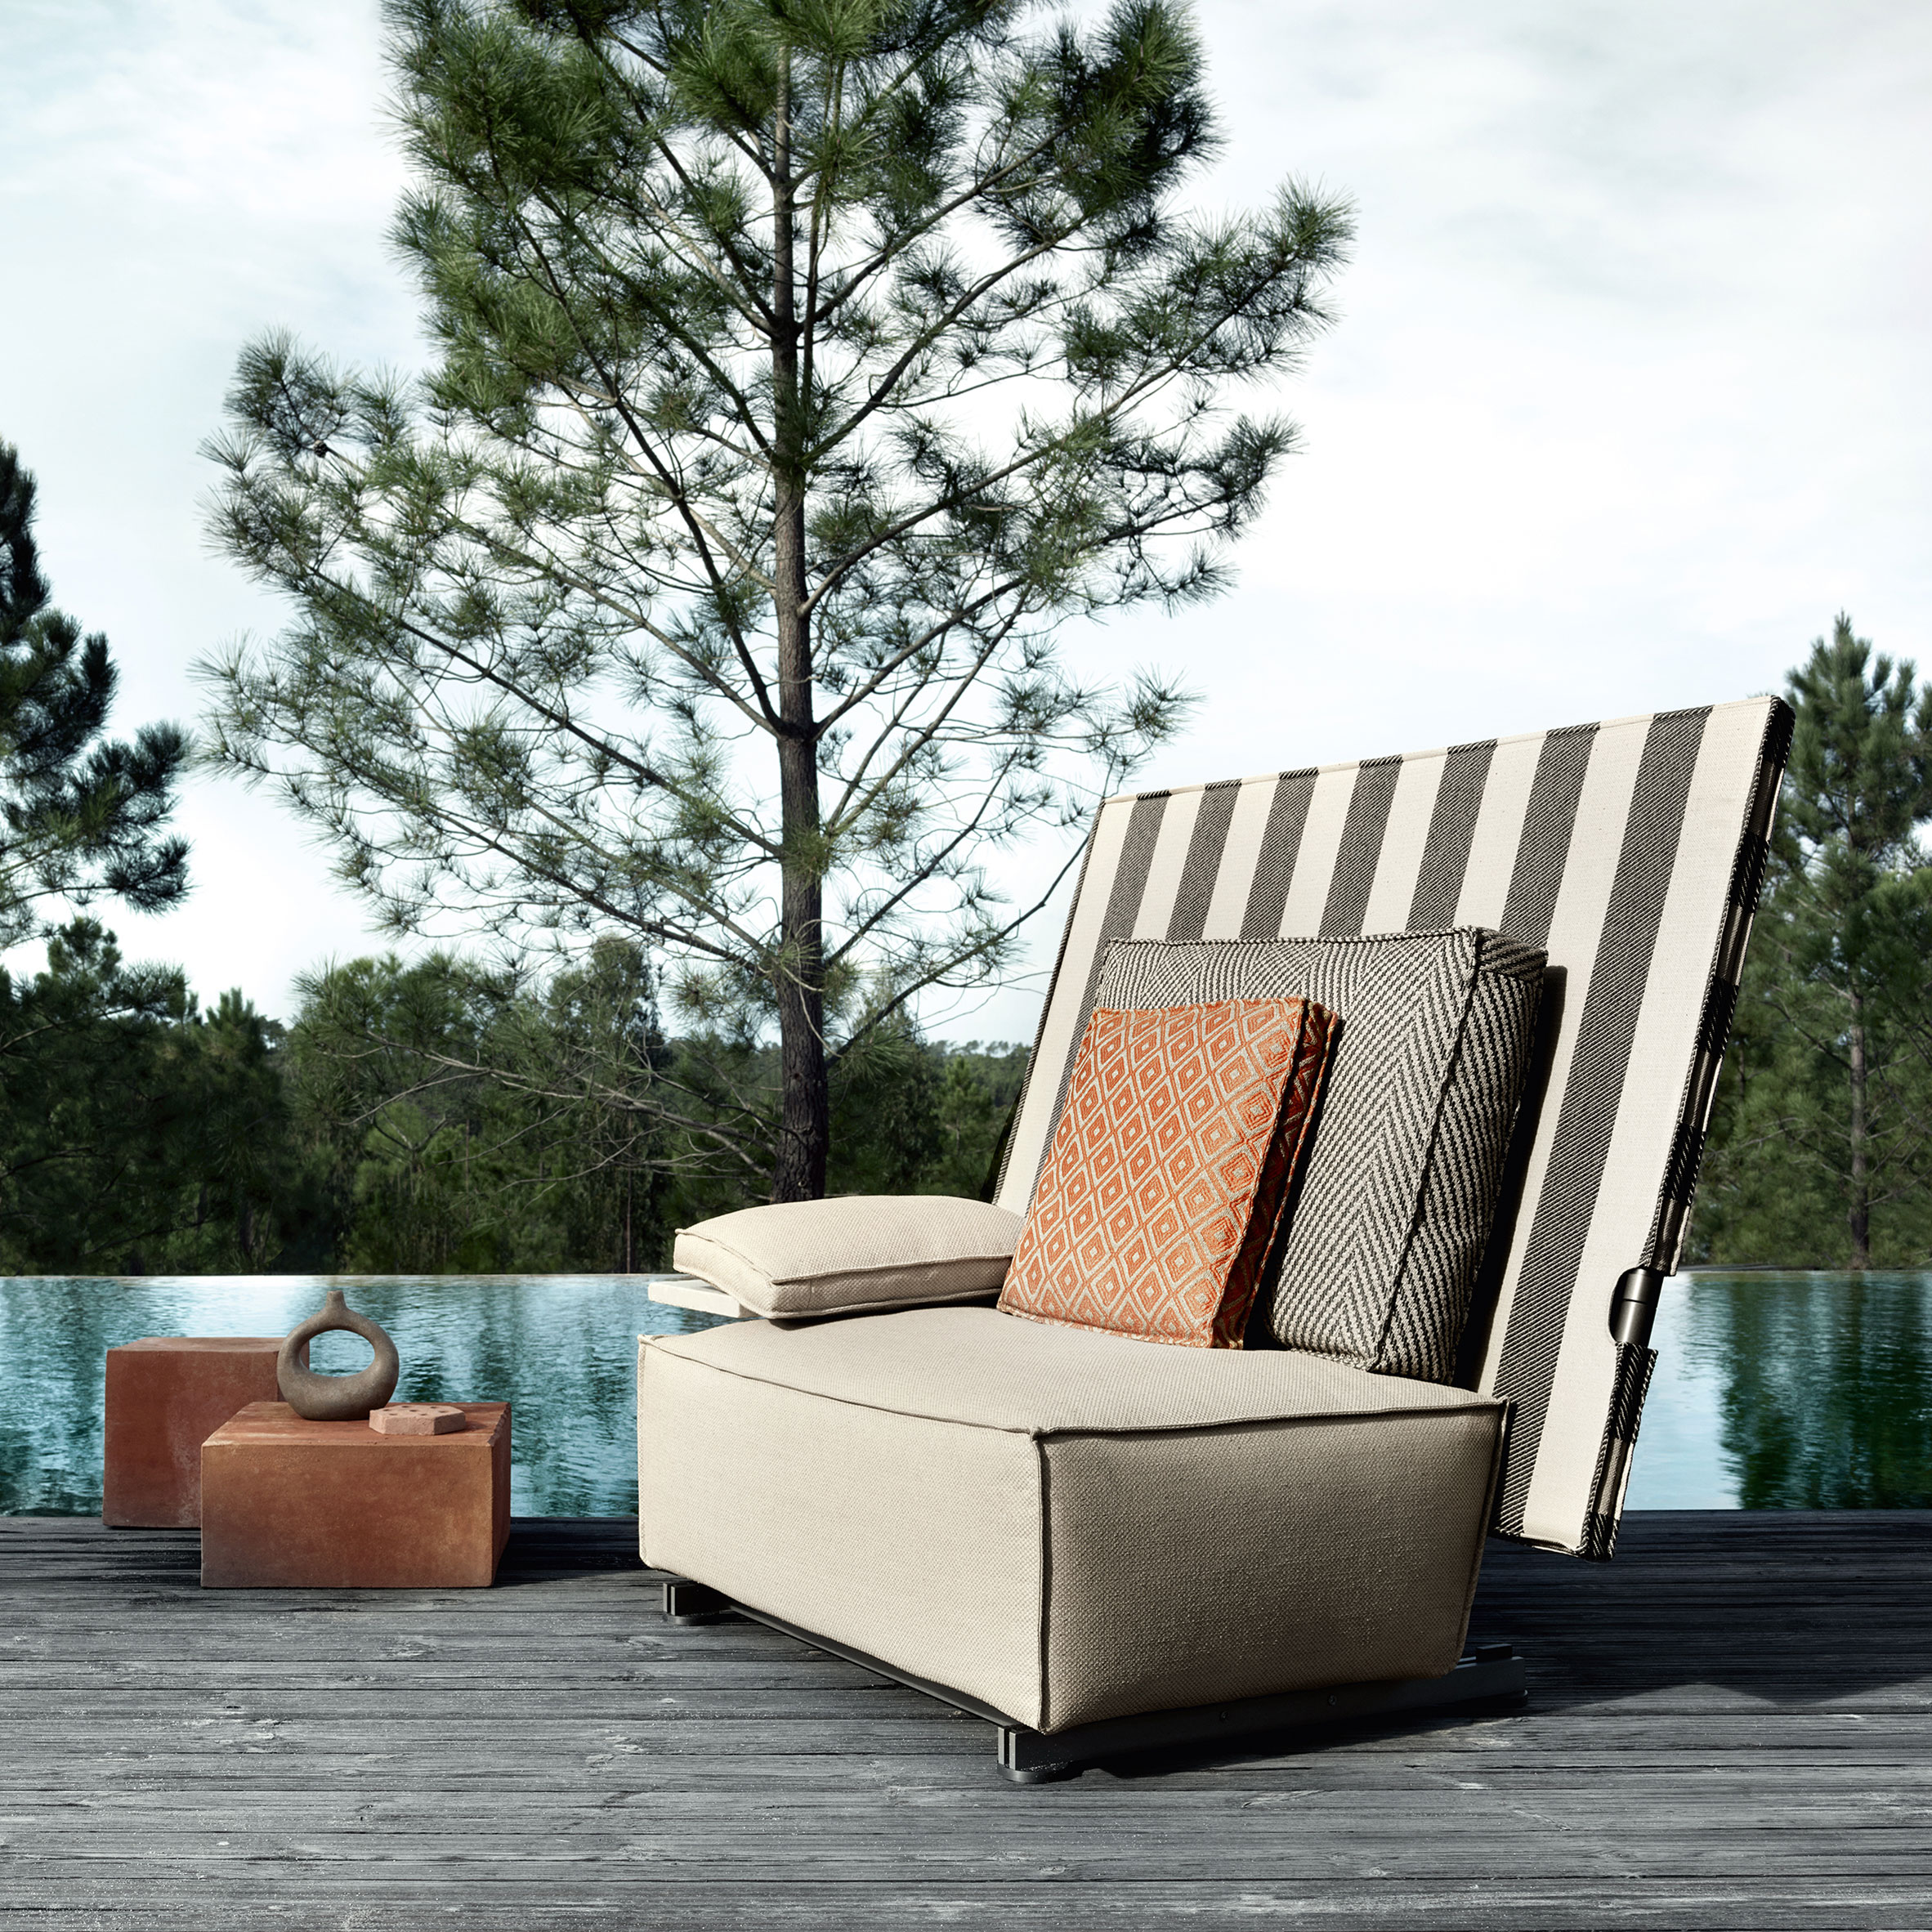 Oh It Rains Outdoor Furniture By Philippe Starck Folds In Half To Ward Off Rain